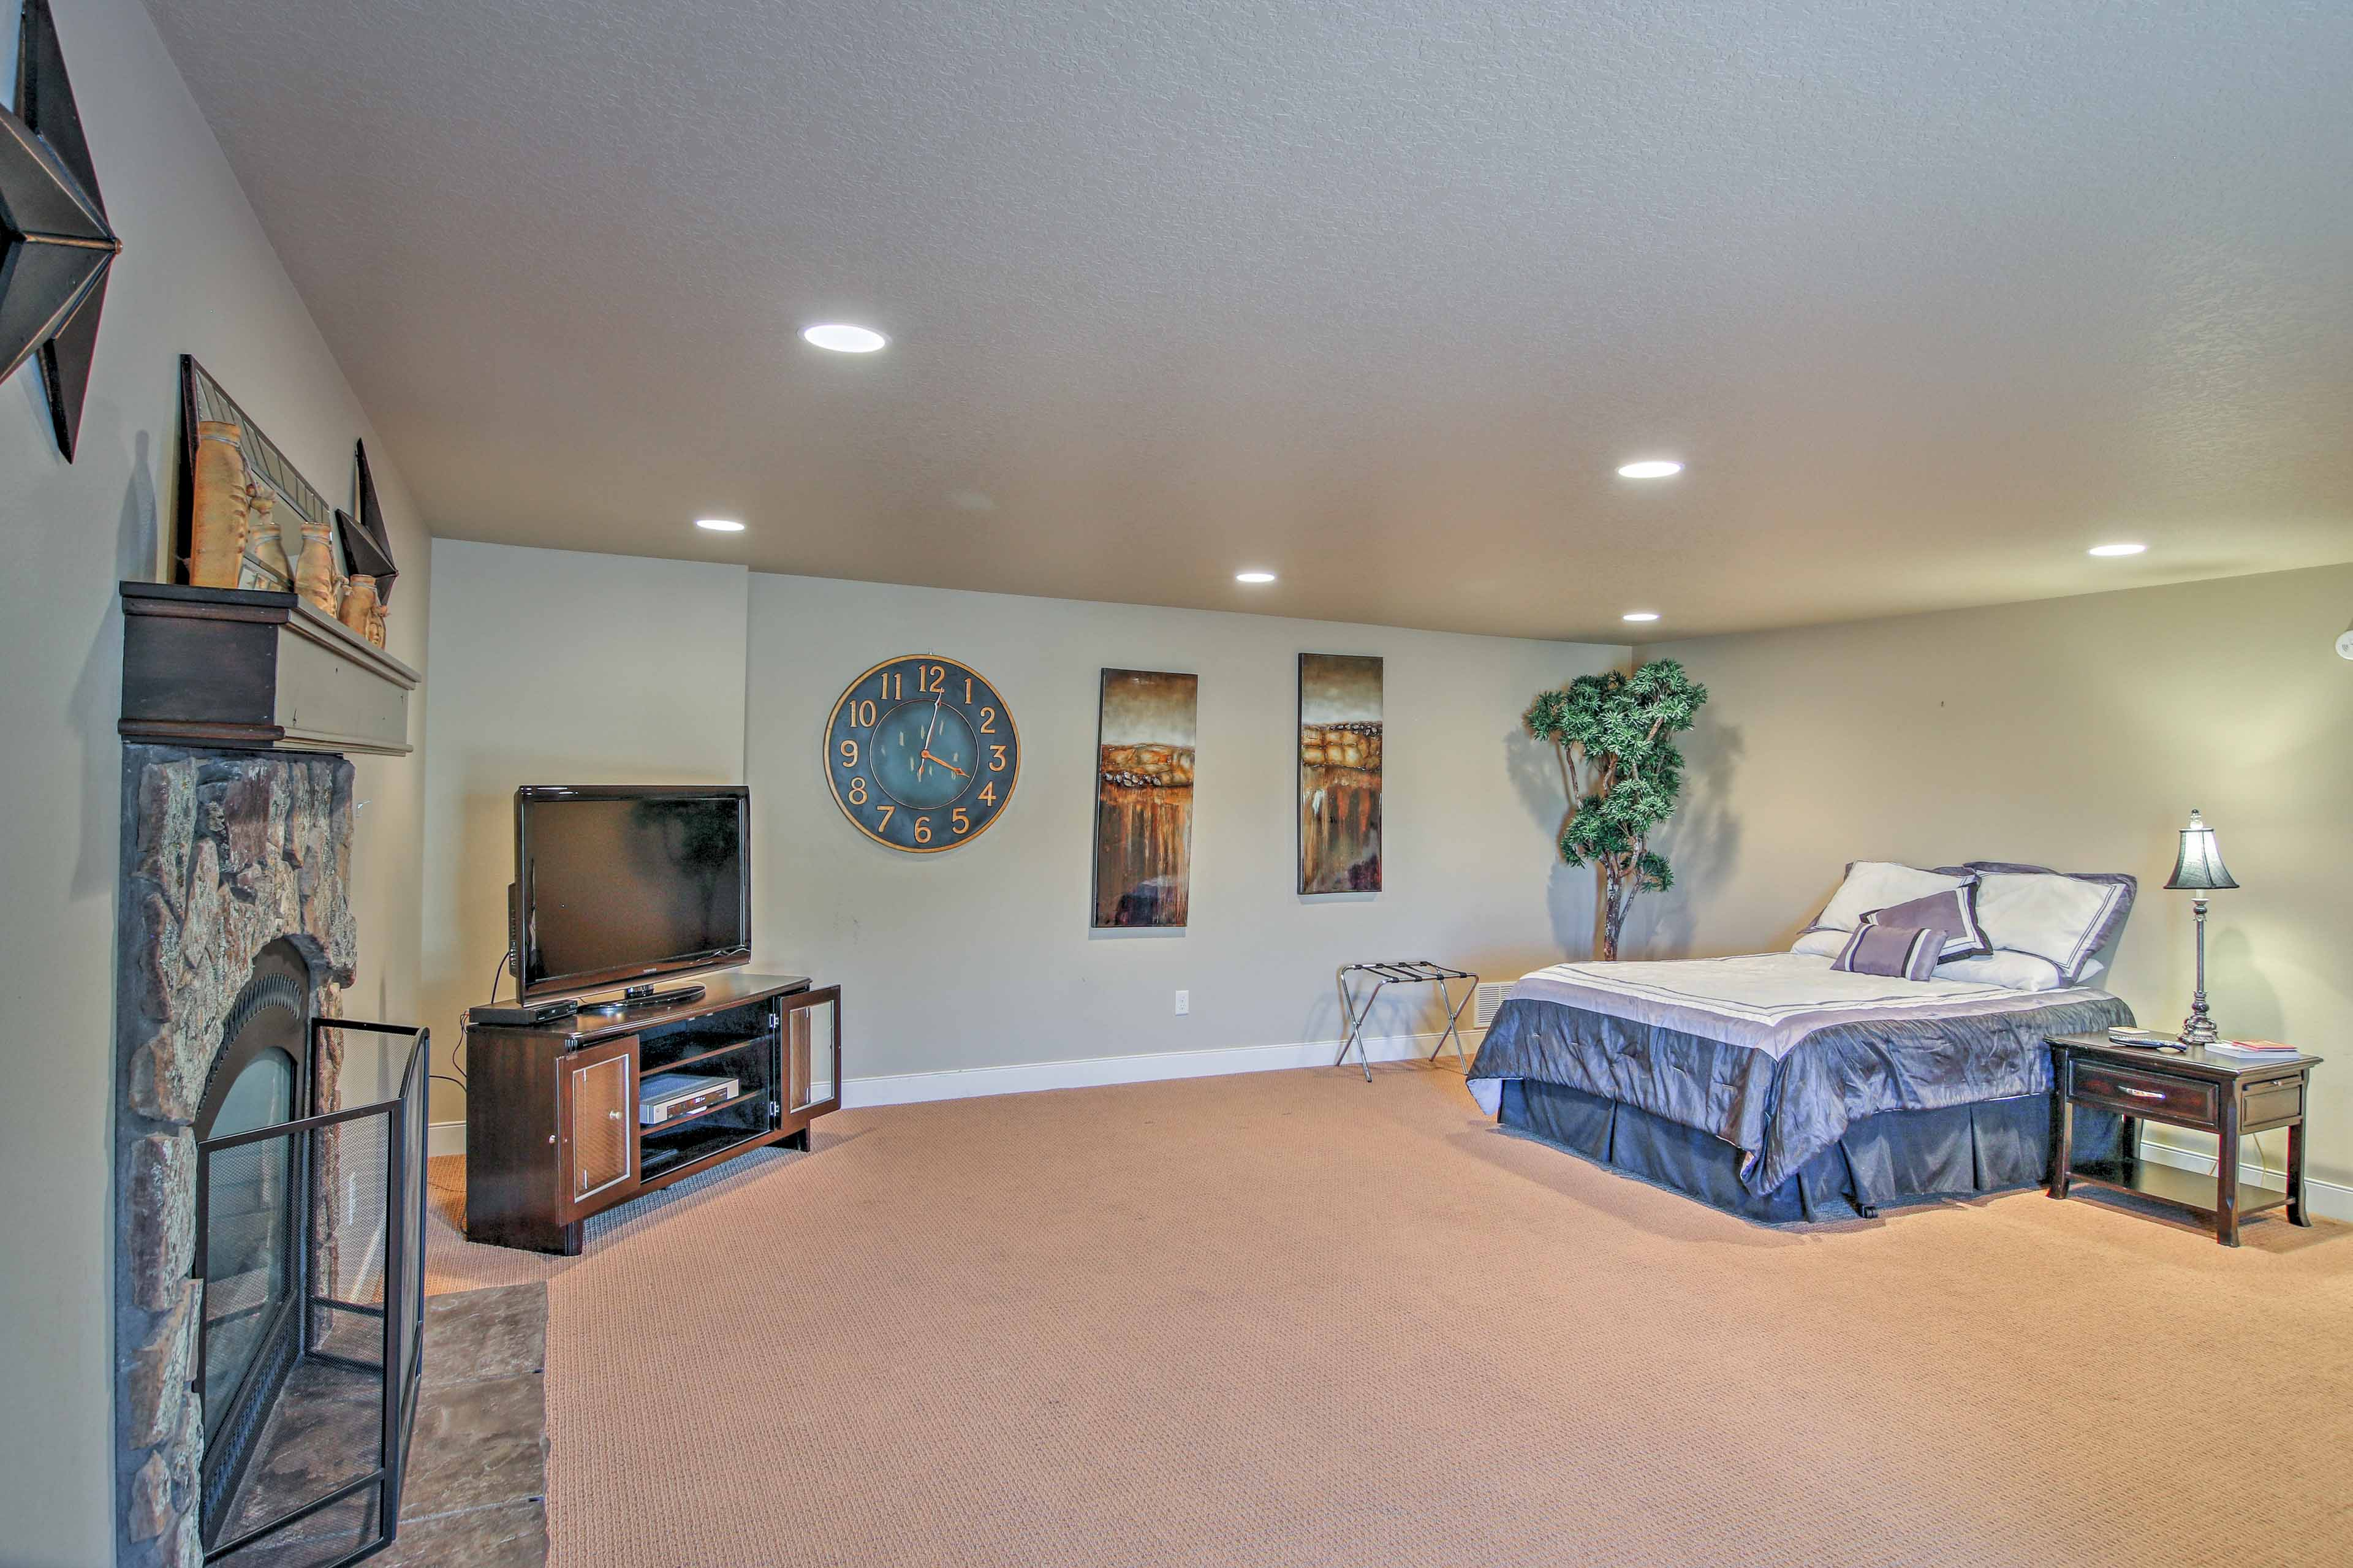 The basement bedroom includes a flat-screen cable TV and gas fireplace.